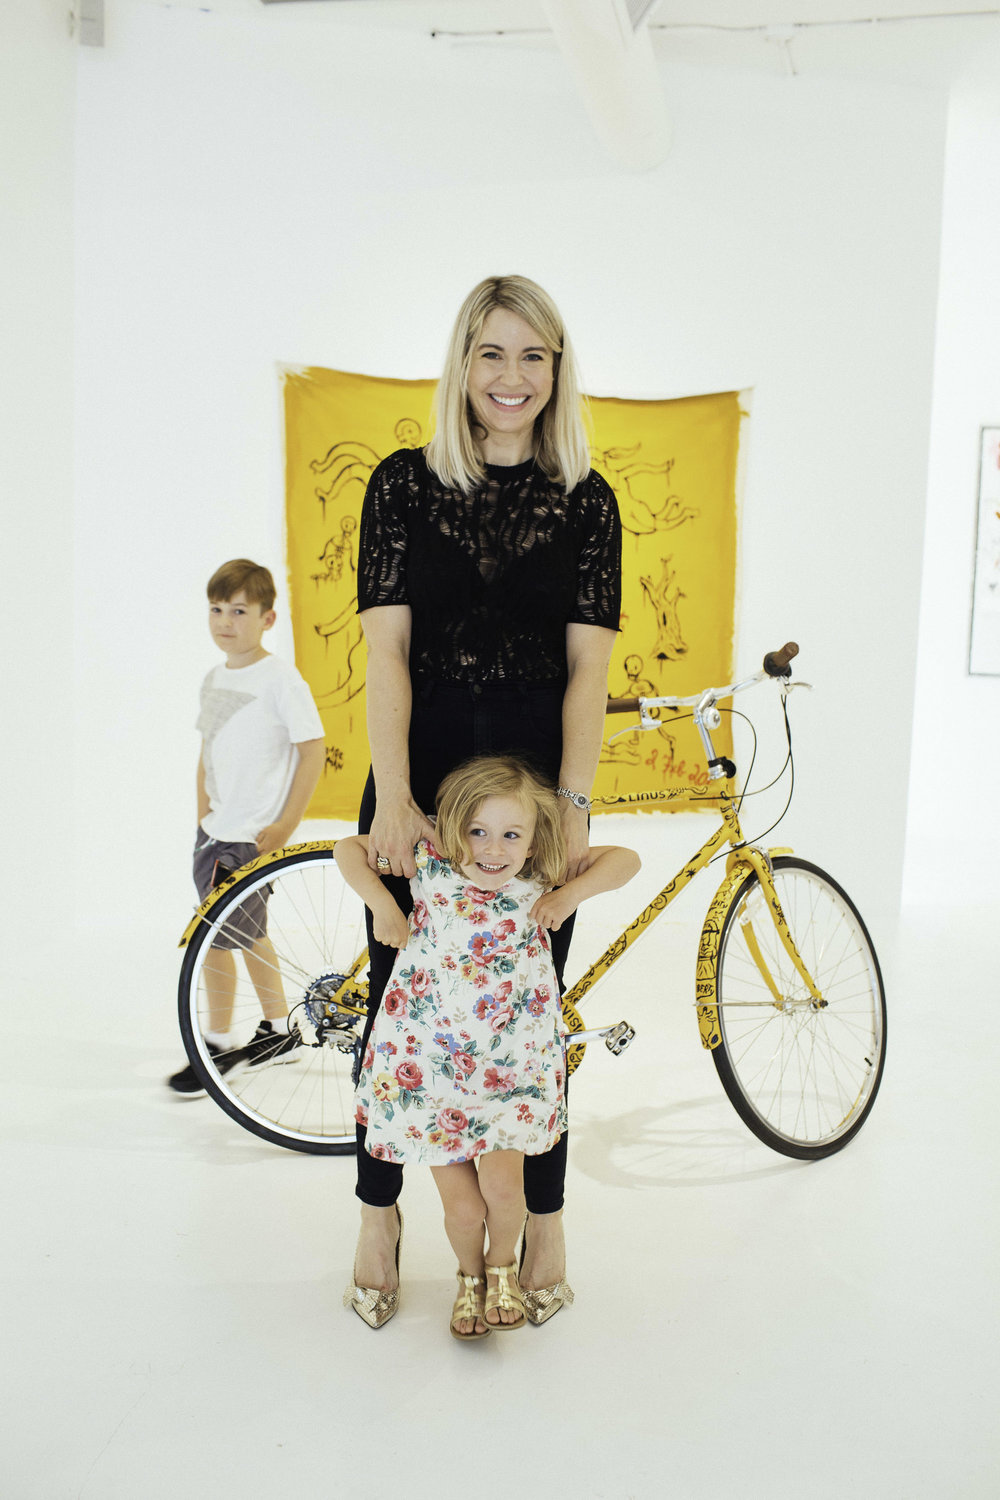 Cheryl Lee Scott, her daughter Kiki and her son Hayden shot by Josh Franklin at the opening of 'TEN'